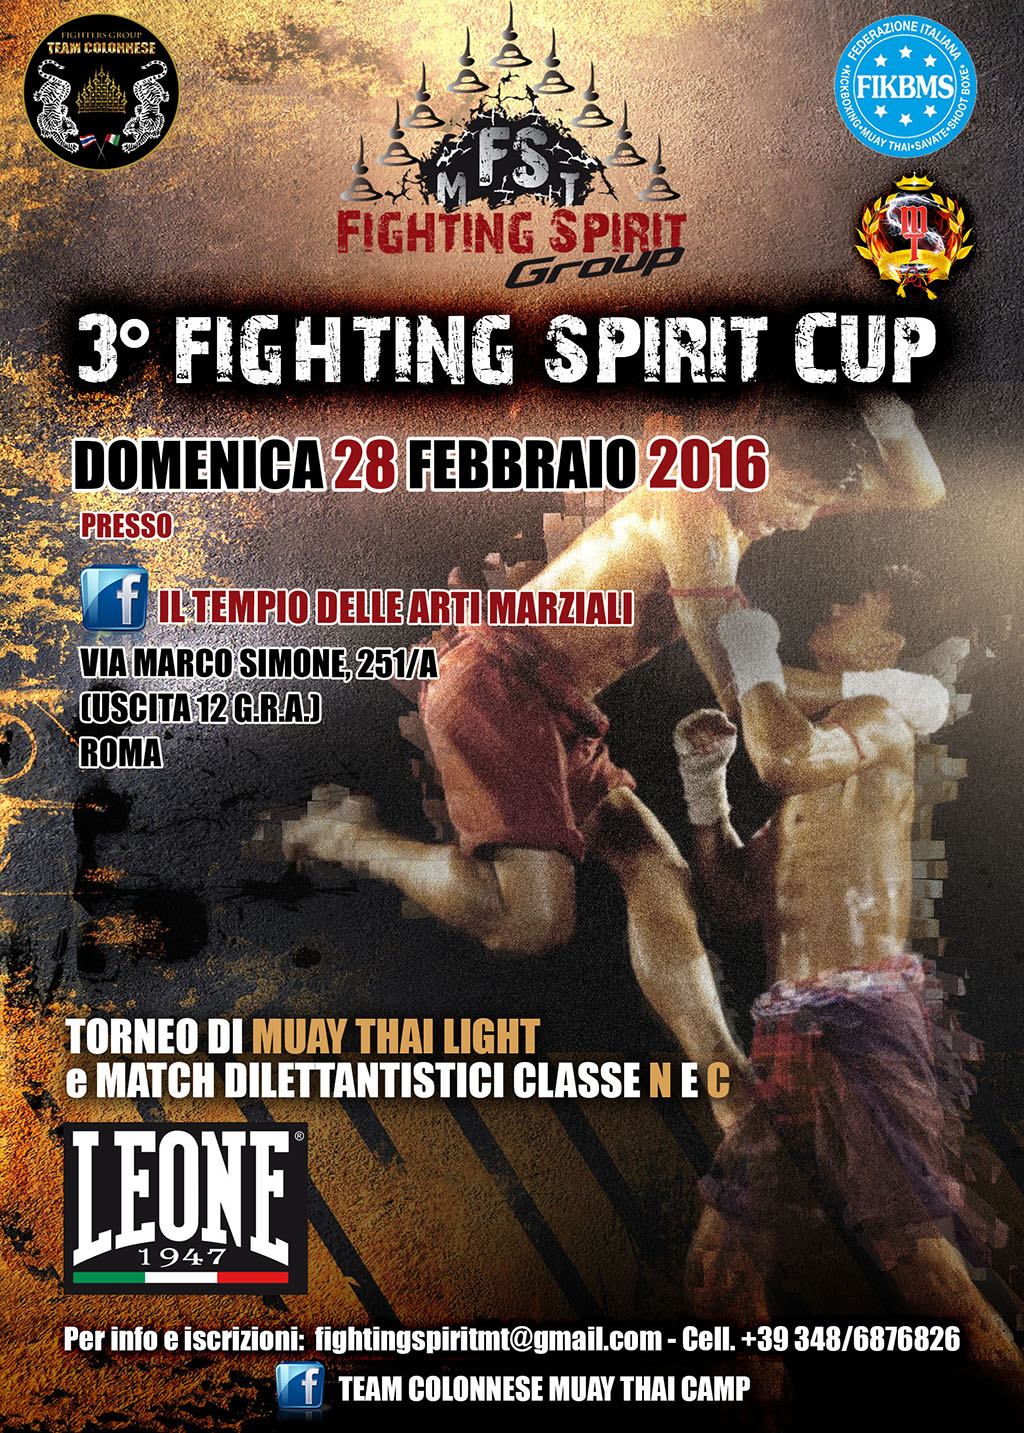 FIGHTING SPIRIT CUP